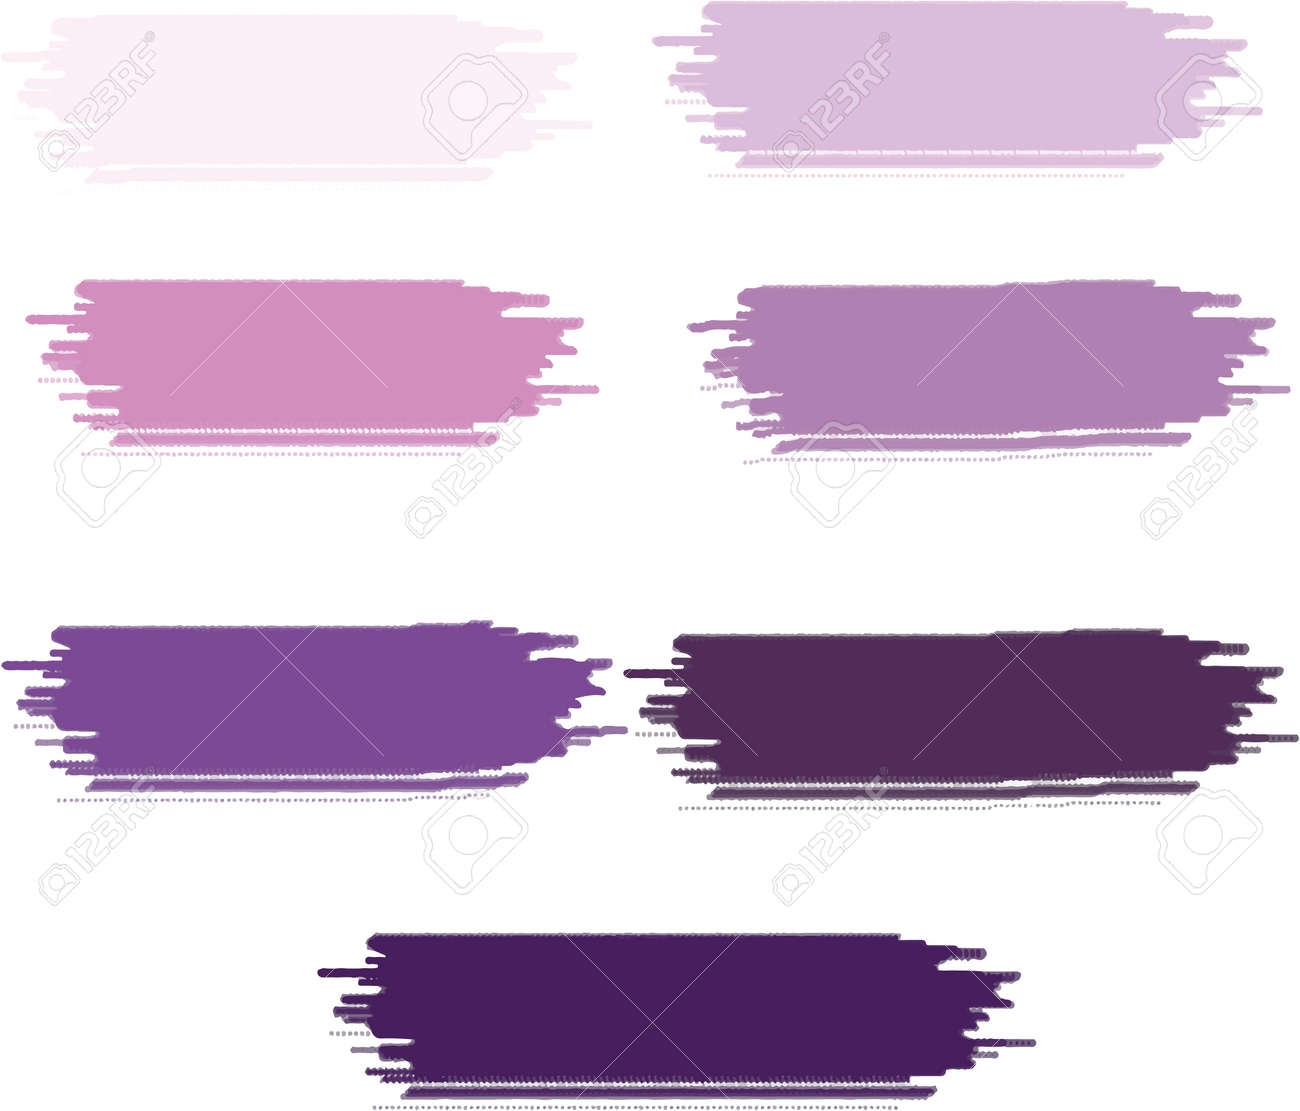 Stock Photo - Colorful watercolor brush stroke collection backgrounds. - 169739146